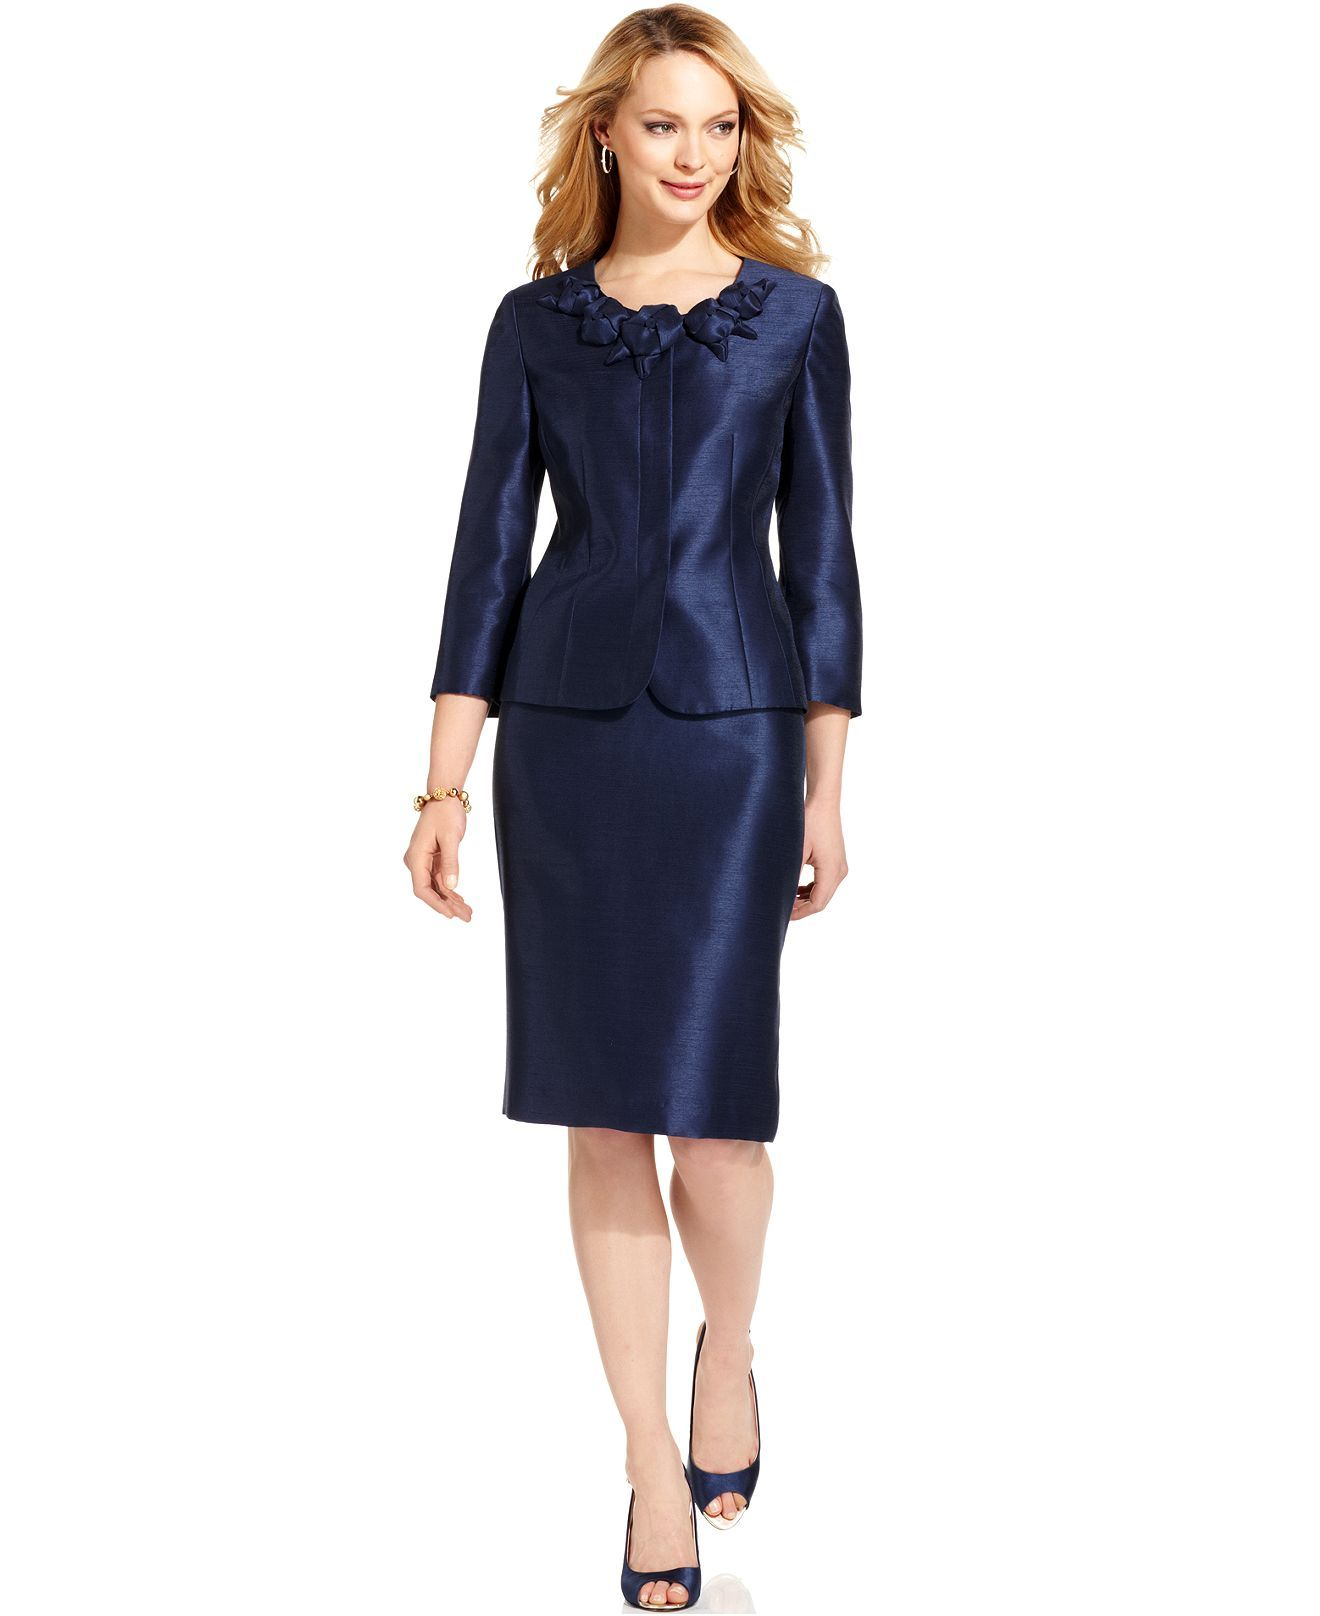 Kasper Wohndesign Outlet Landau: Kasper Suit, Three-Quarter-Sleeve Shantung Jacket & Skirt